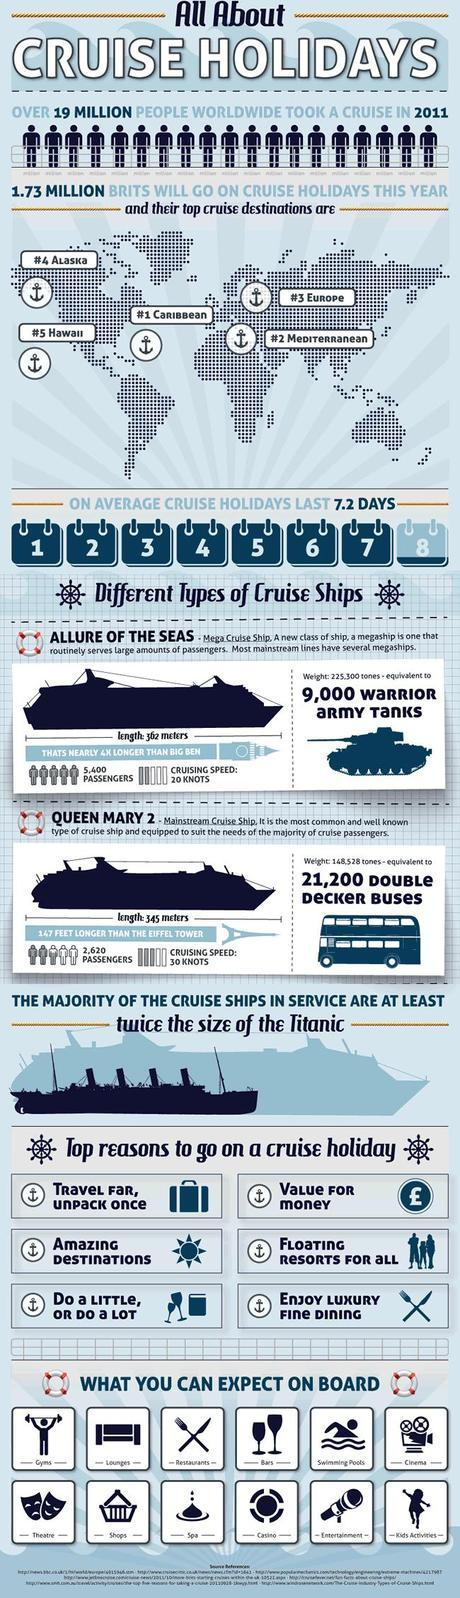 All About Cruise Holidays Infographic